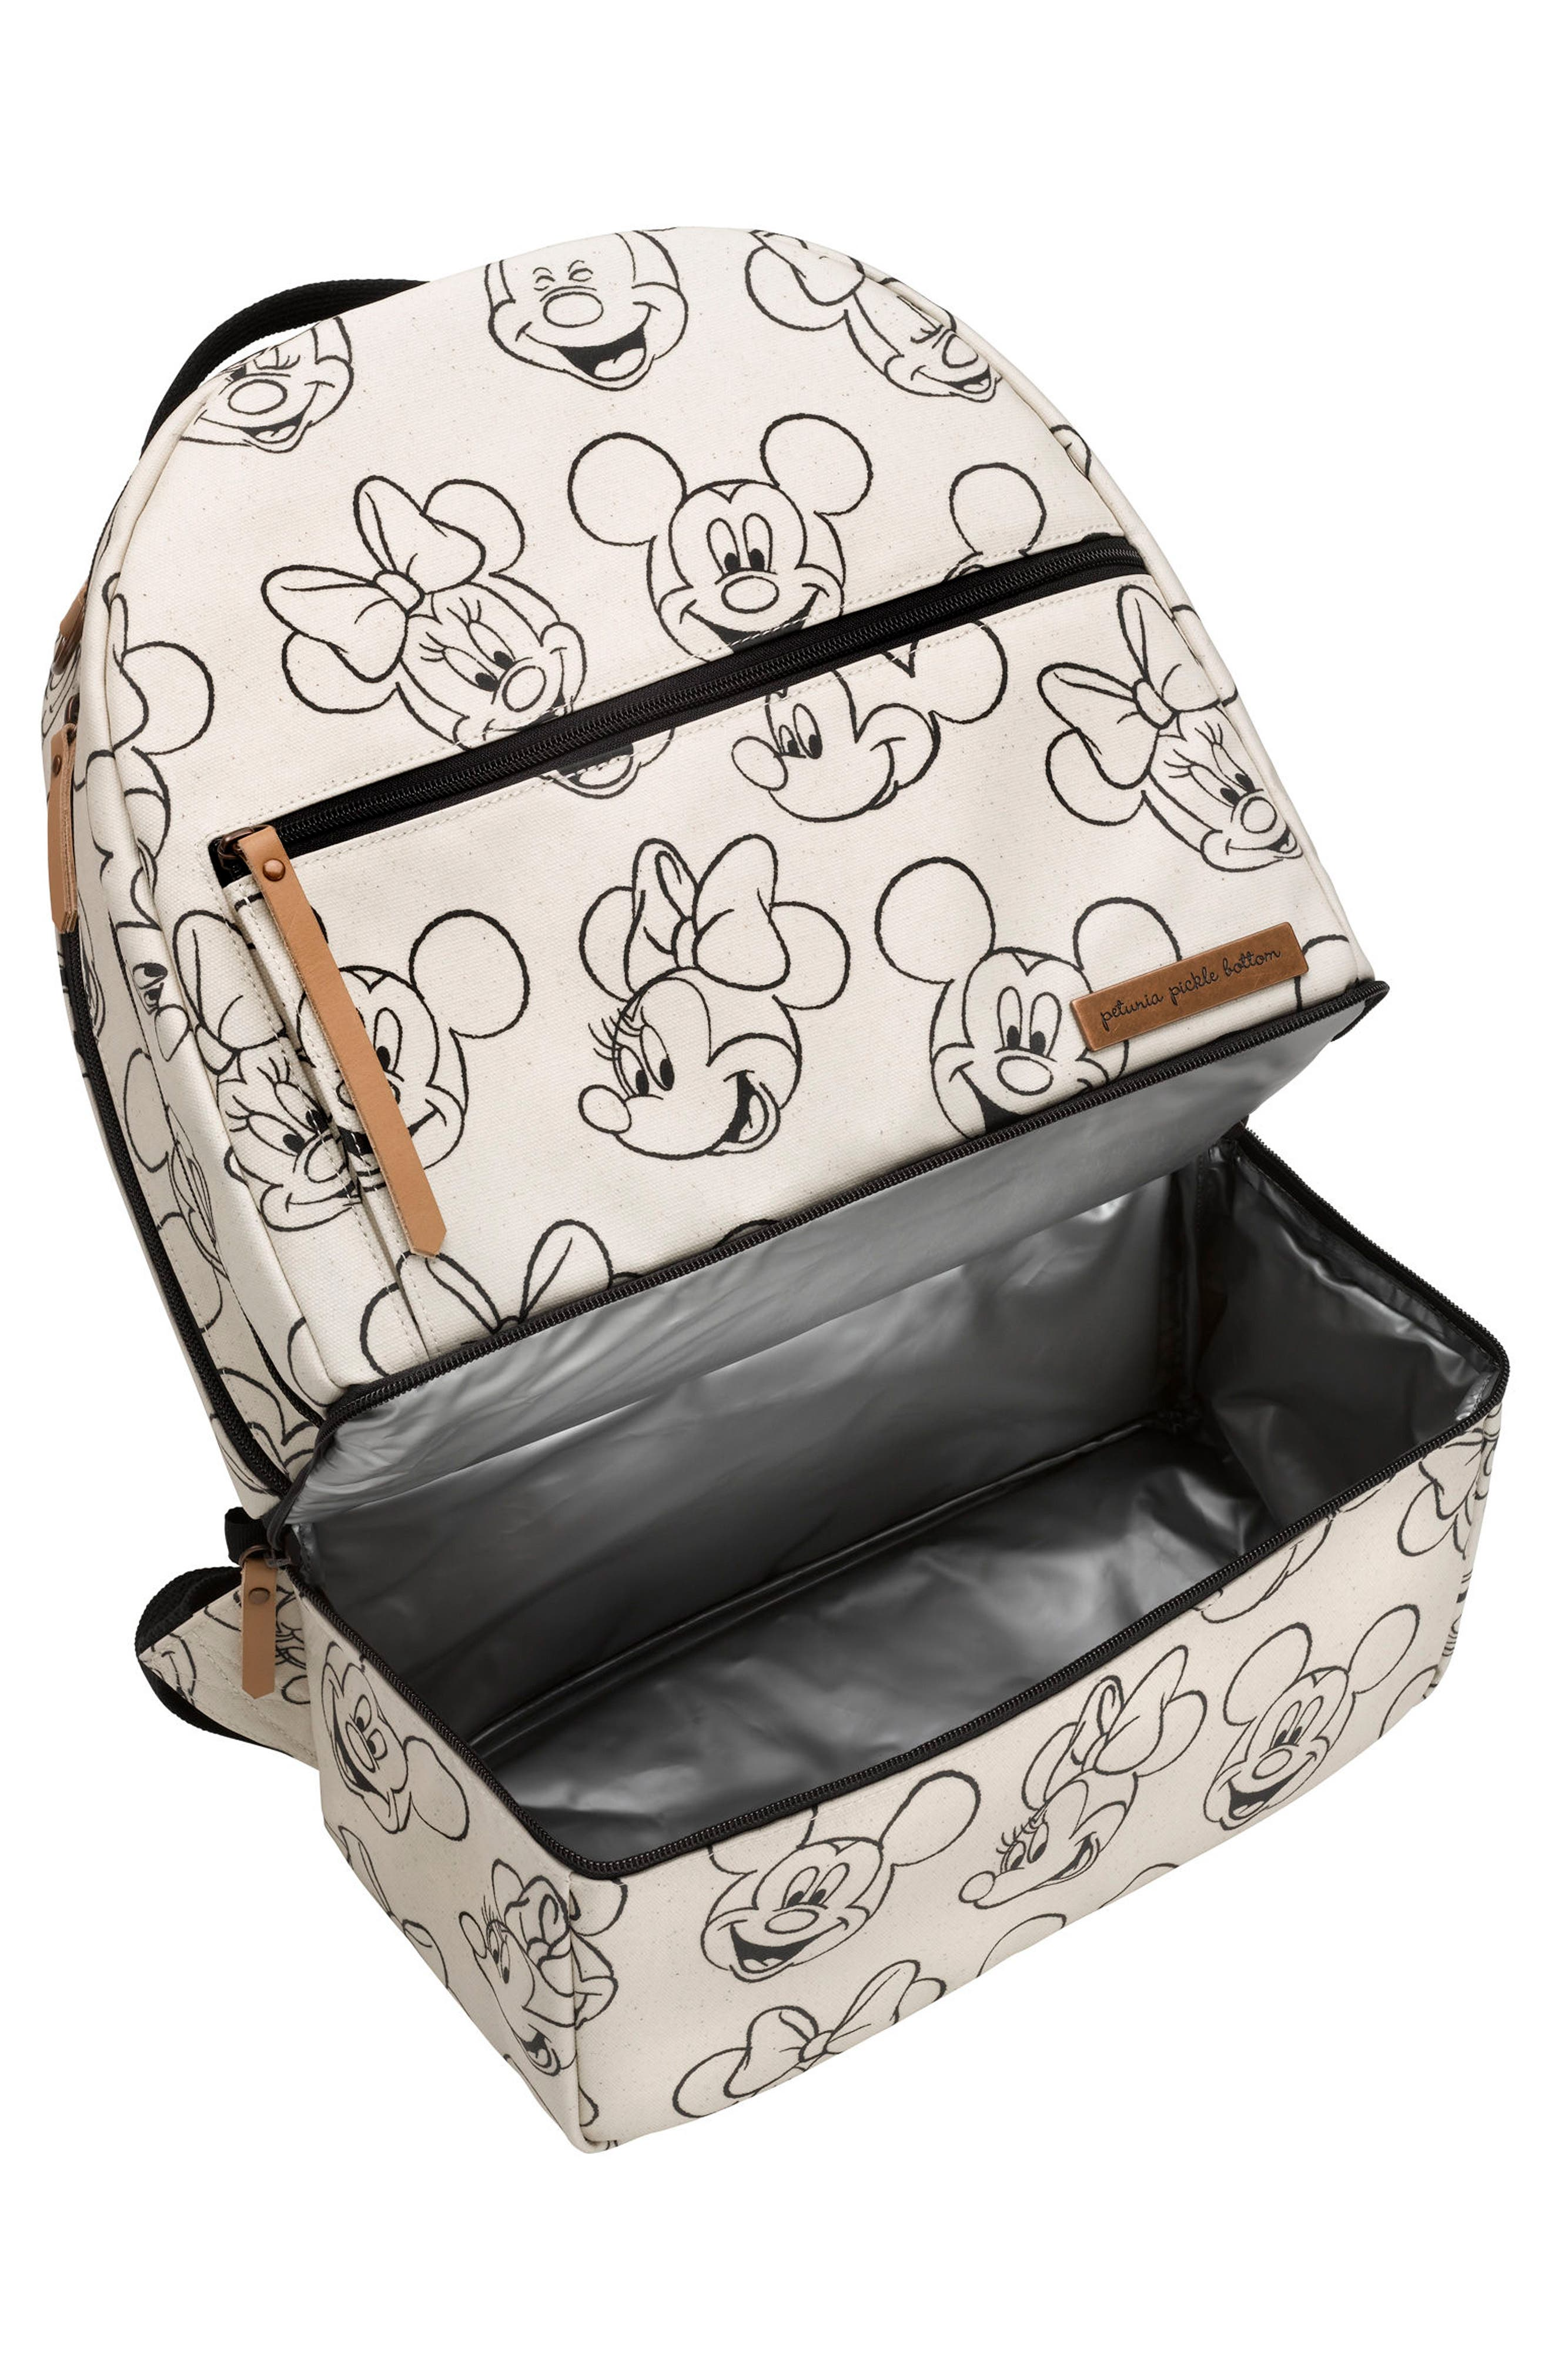 x Disney<sup>®</sup> Axis Backpack,                             Alternate thumbnail 3, color,                             SKETCHBOOK MICKEY AND MINNIE